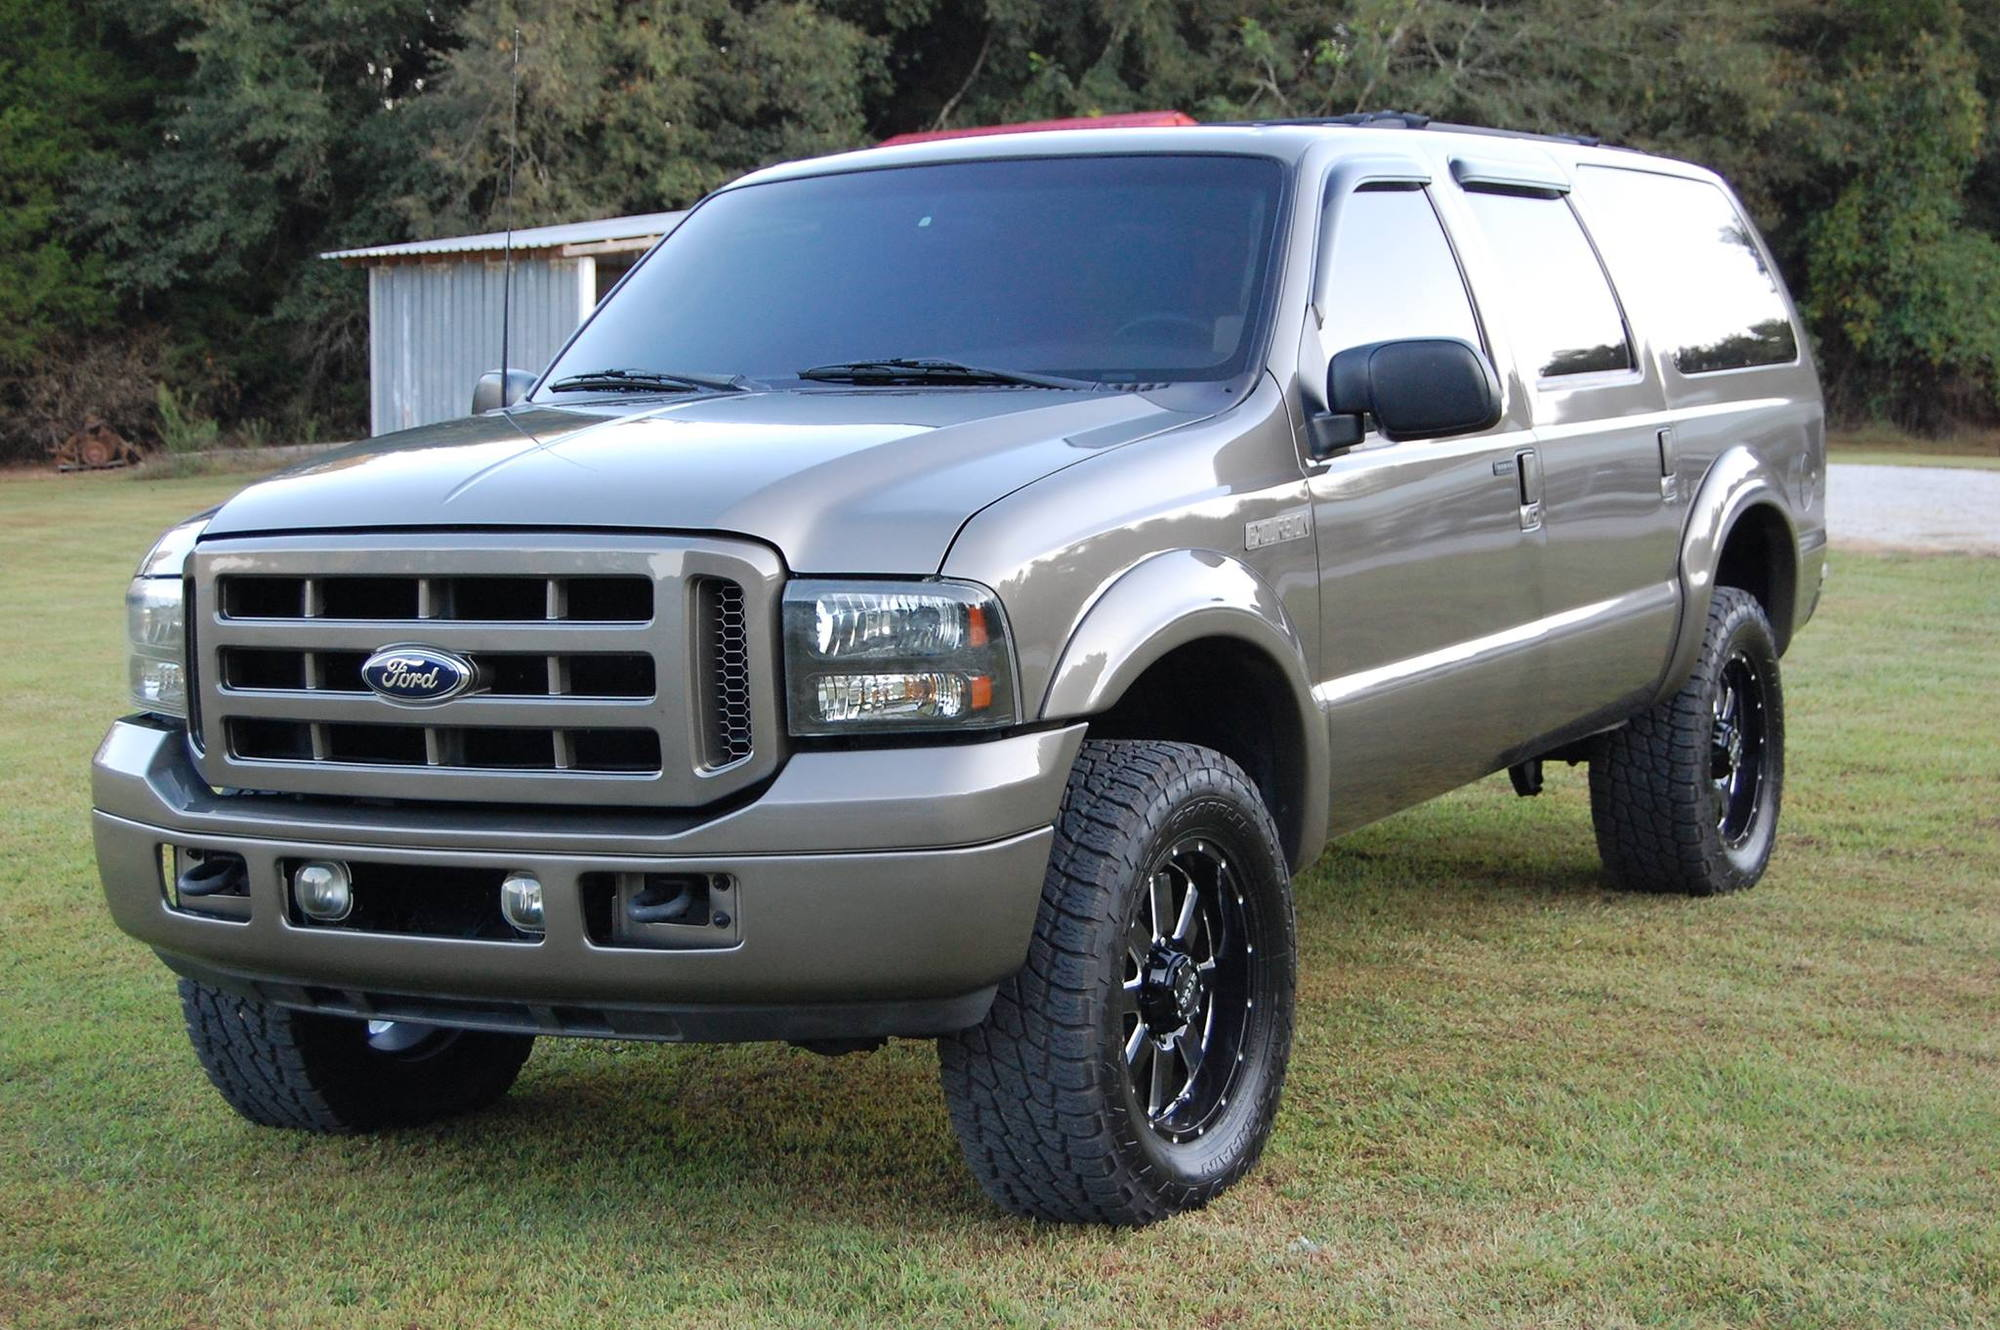 2003 Limited 4x4 Excursion 6 0 Ford Truck Enthusiasts Forums